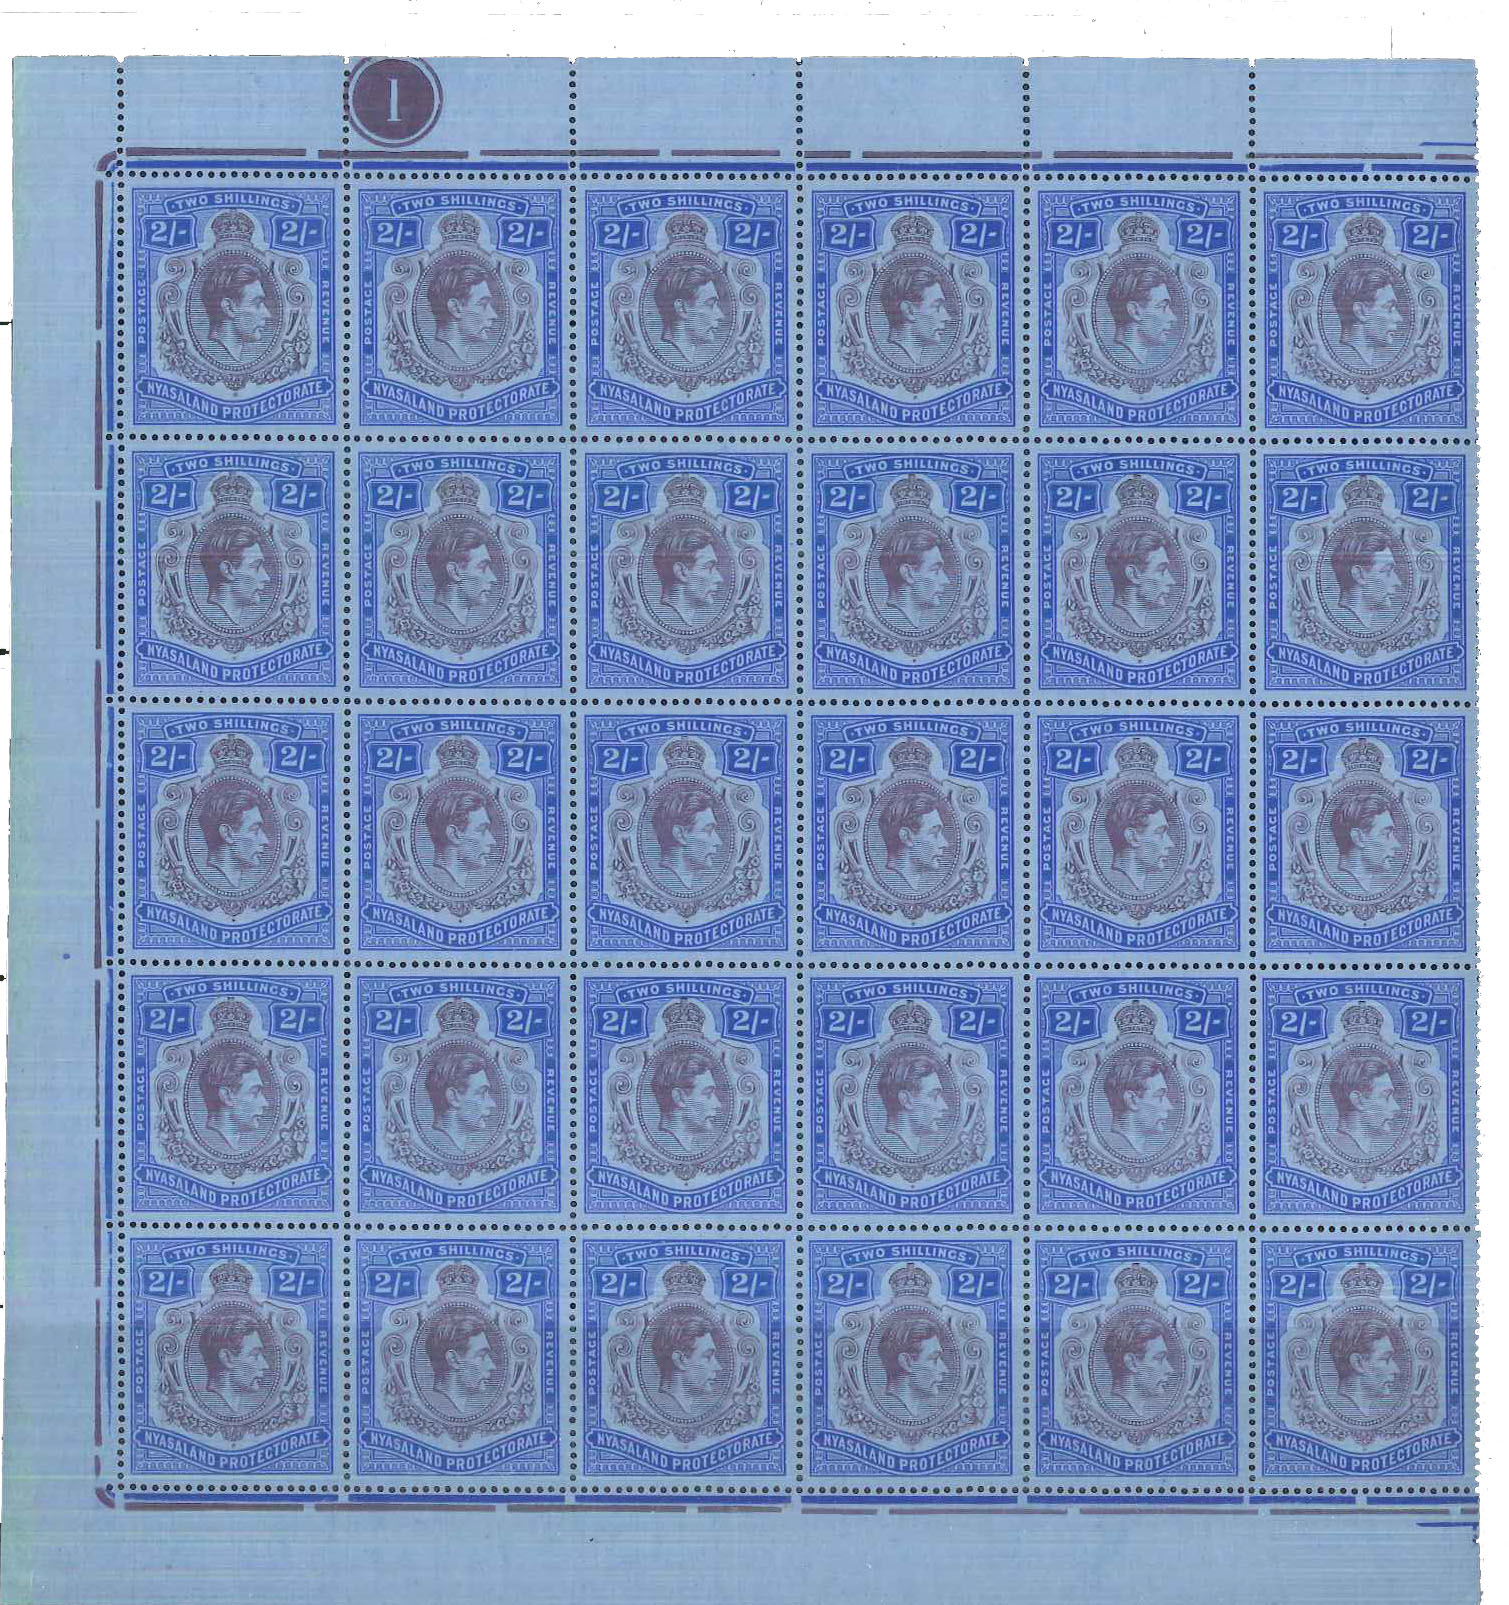 """1945 """"MILY ADMN"""" 1p red-orange in complete sheet of 320"""